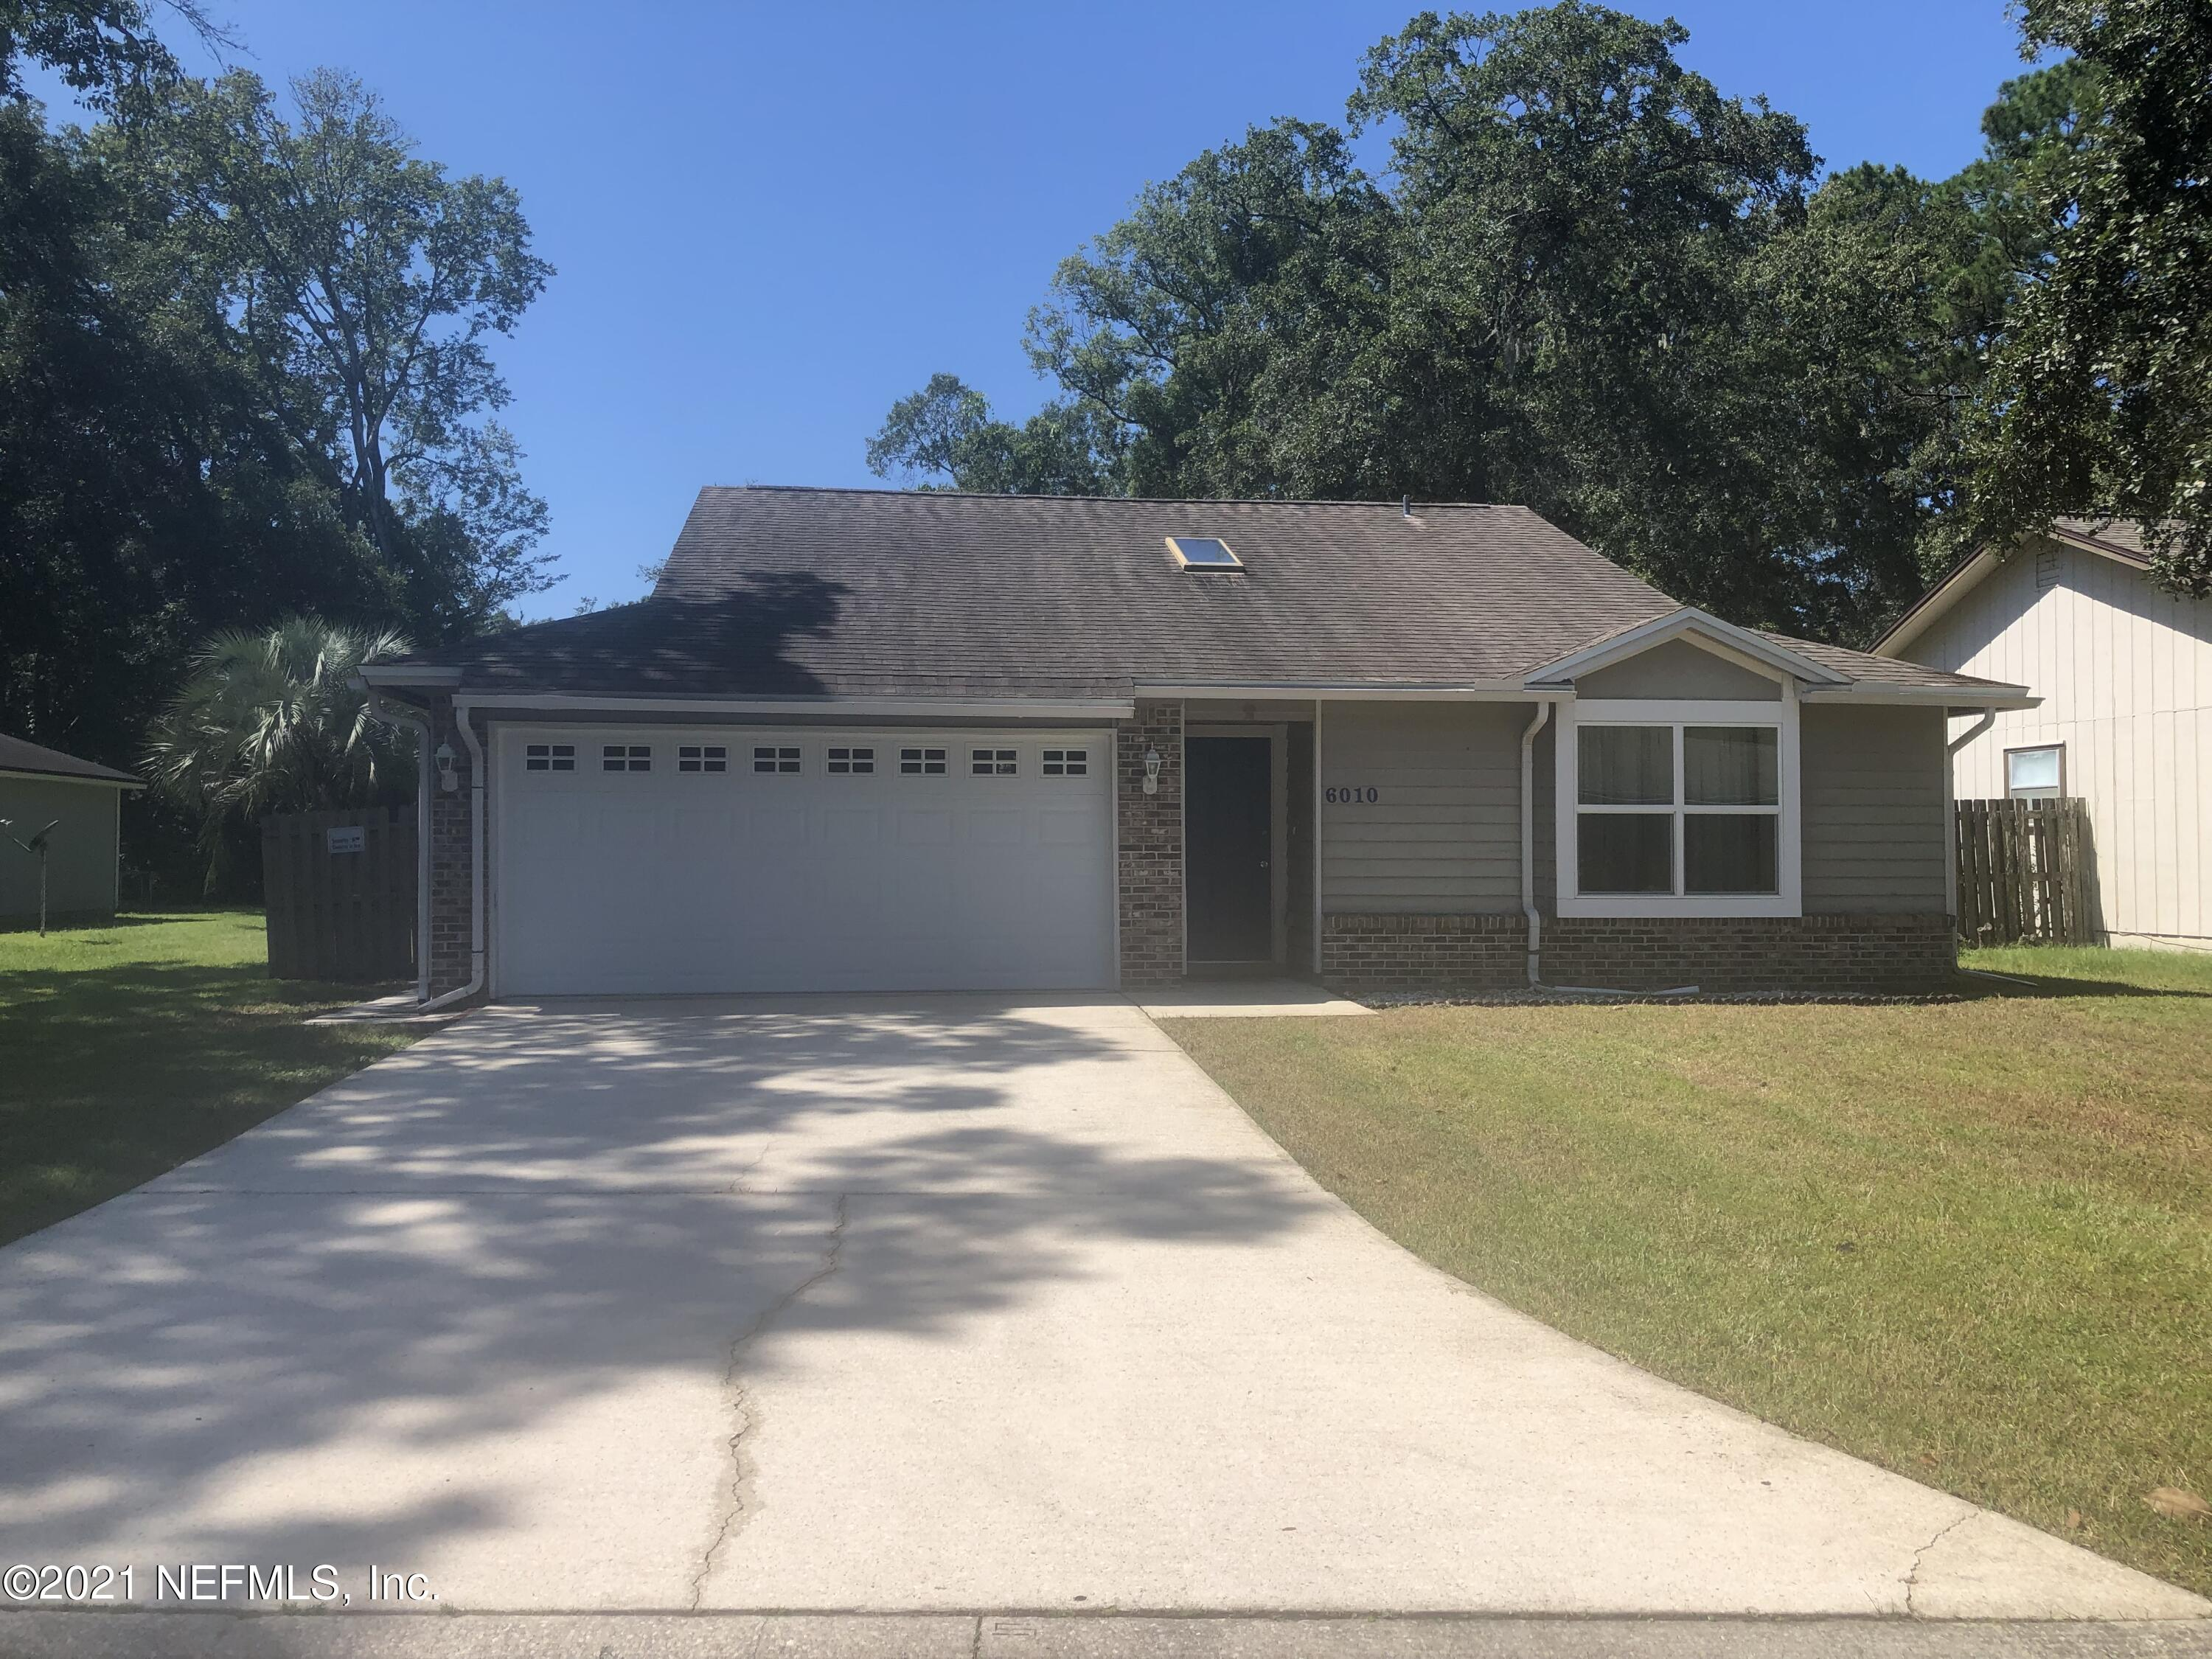 OPEN HOUSE SAT 10/23 from 2:00 to 4:00 pm. Bring your buyers to see this house that is READY TO MOVE IN! Beautiful 3 bedroom / 2 bathroom single family home with oversize lot and no HOA. Large family room with wood burning fire place, vaulted ceilings and glass enclosed porch overlooking the extensive backyard. Split bedroom design, double panel windows, 2 car garage with new motor (3 years warranty) that allows access (open/close the garage door) with the phone mobile app MyQ. Inside newly painted, outside and driveway pressure washed and carpet professionally cleaned. Located about 3 miles from NAS JAX with easy access to shopping and dinning.